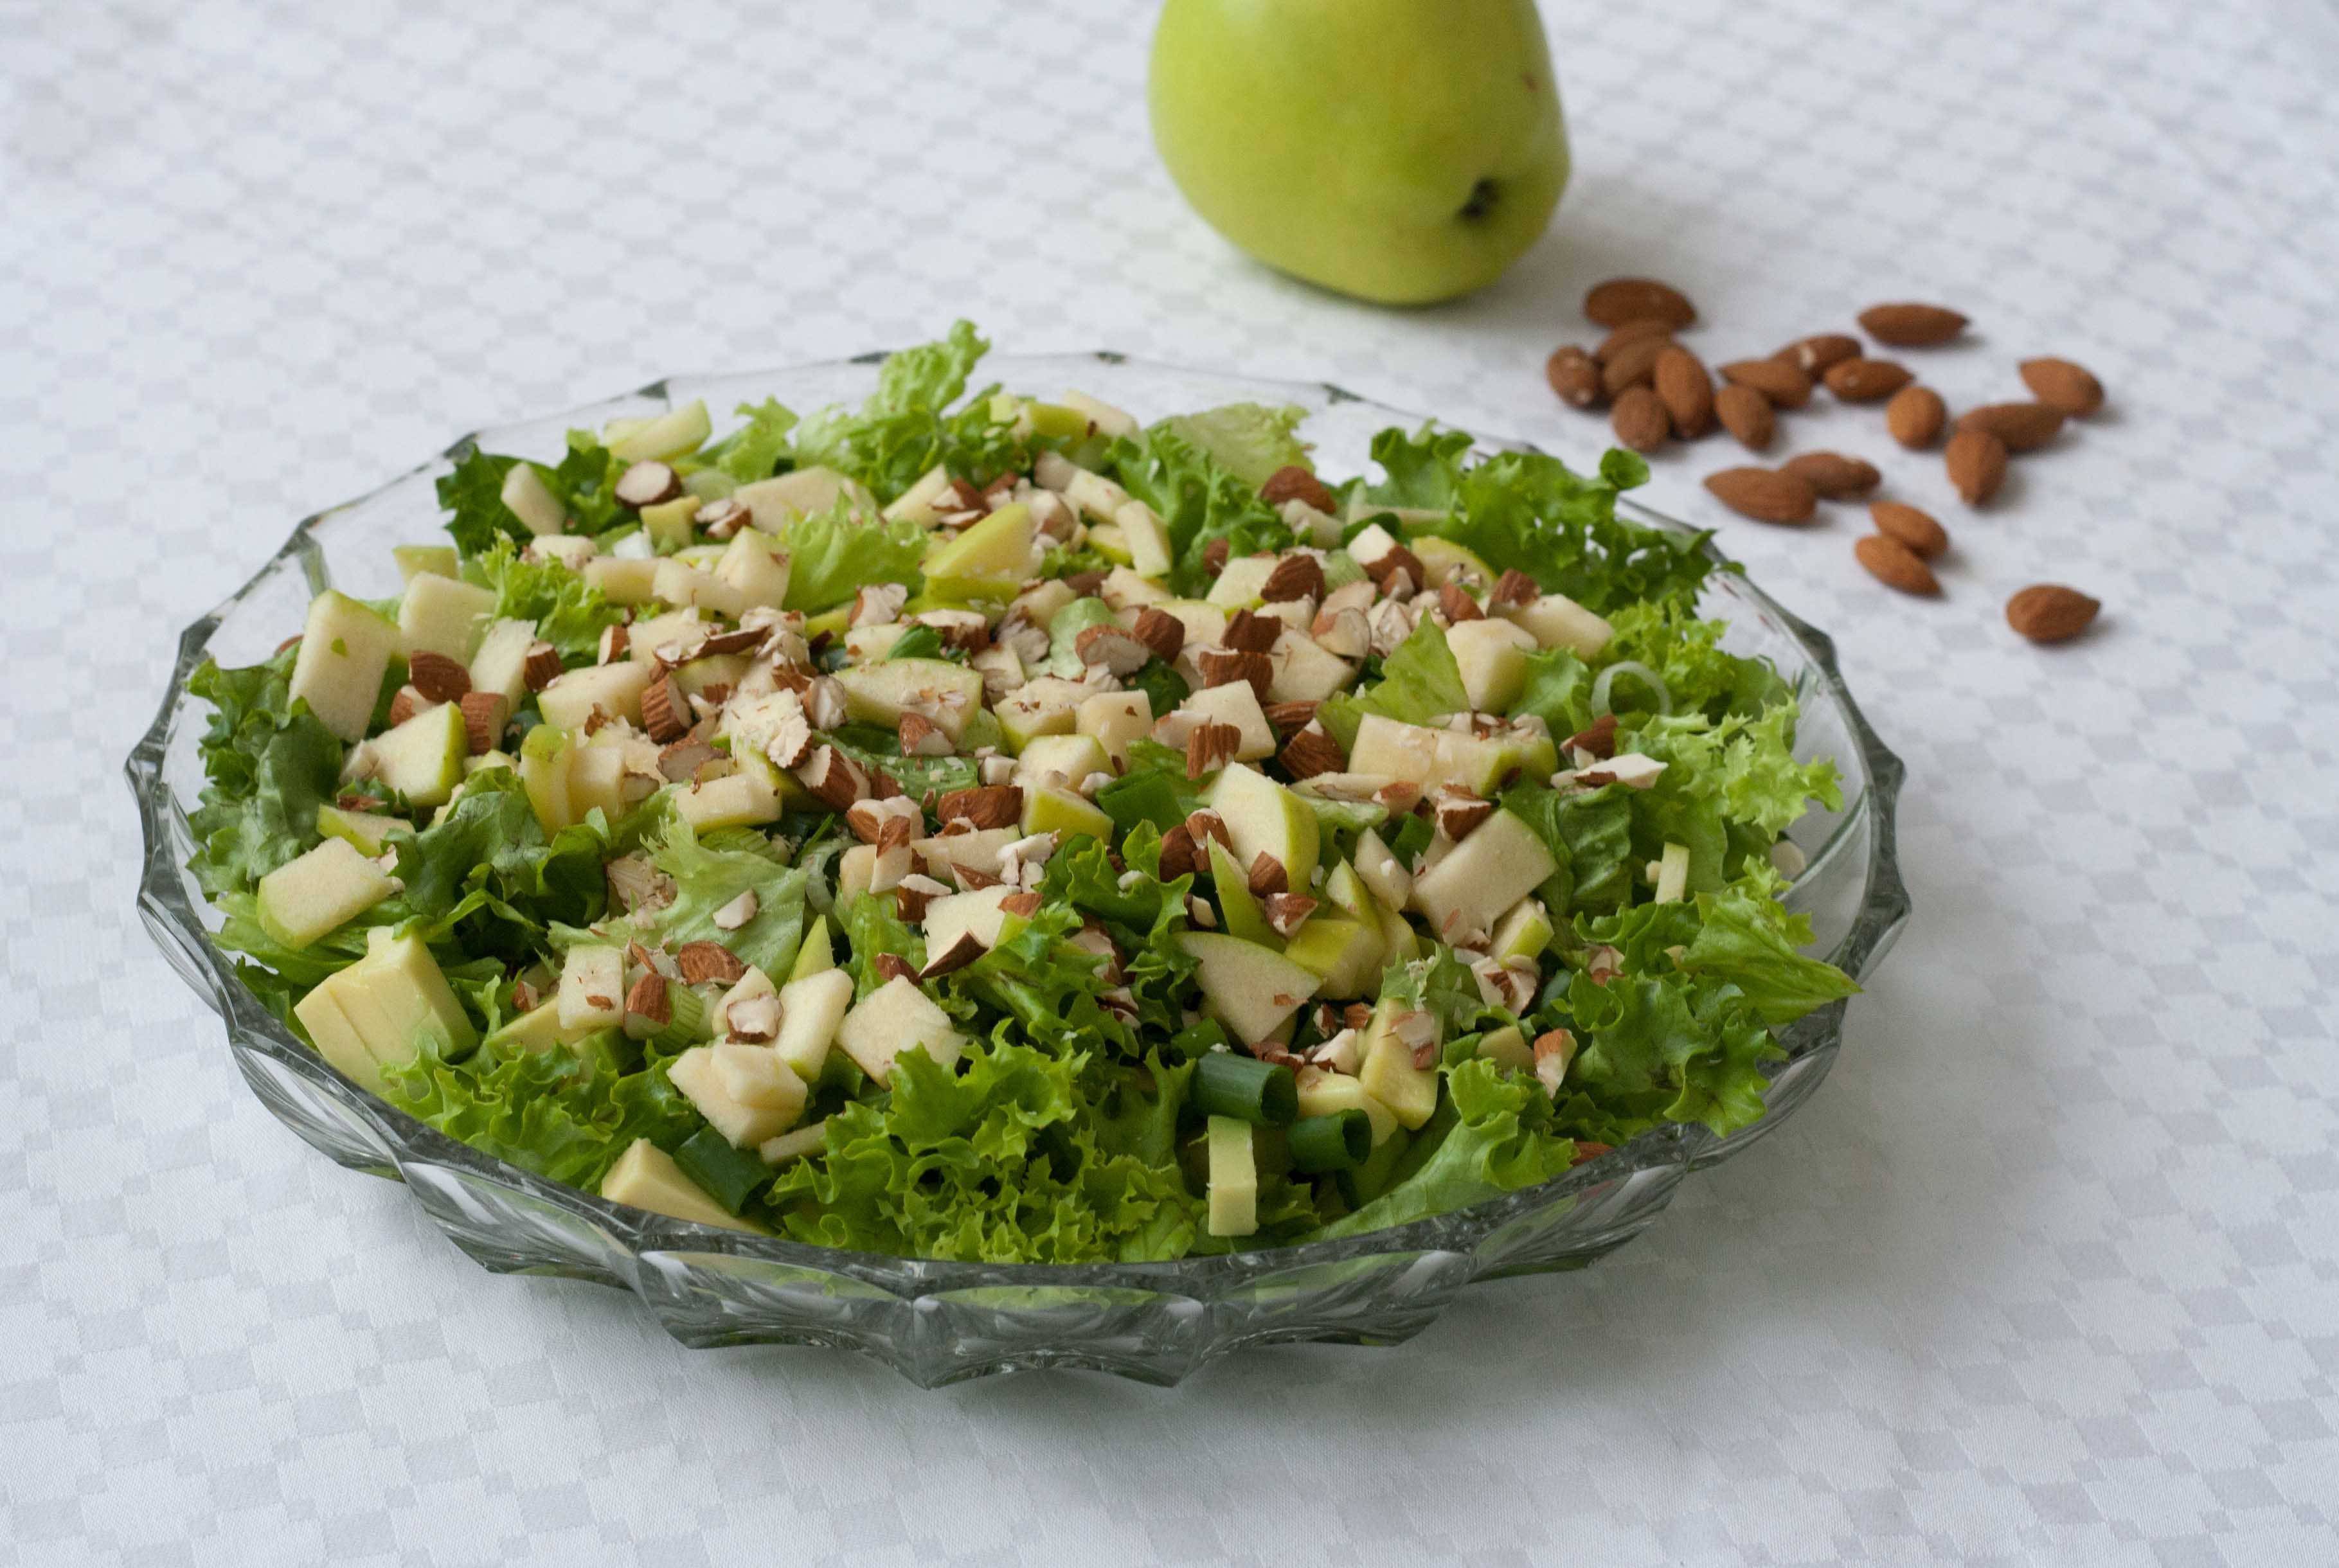 Recipe for Homemade and Simple Green Salad with Apples and Almonds